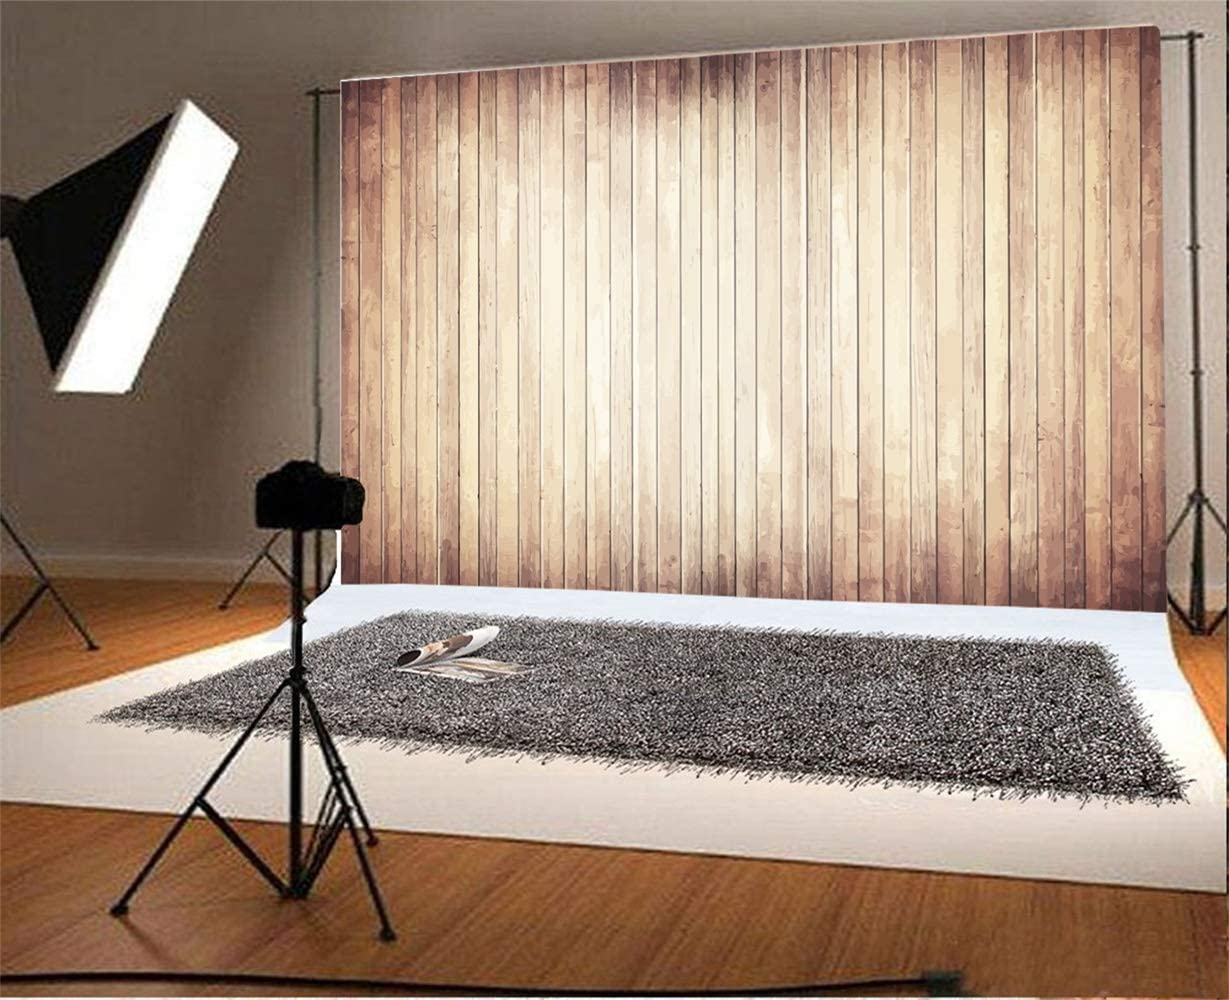 Polyester 8x6ft Grunge Retro Vertical Striped Wood Plank Photography Background Shabby Rustic Old Wooden Board Backdrop Children Adult Pets Artistic Portrait Shoot Nostalgia Countryside